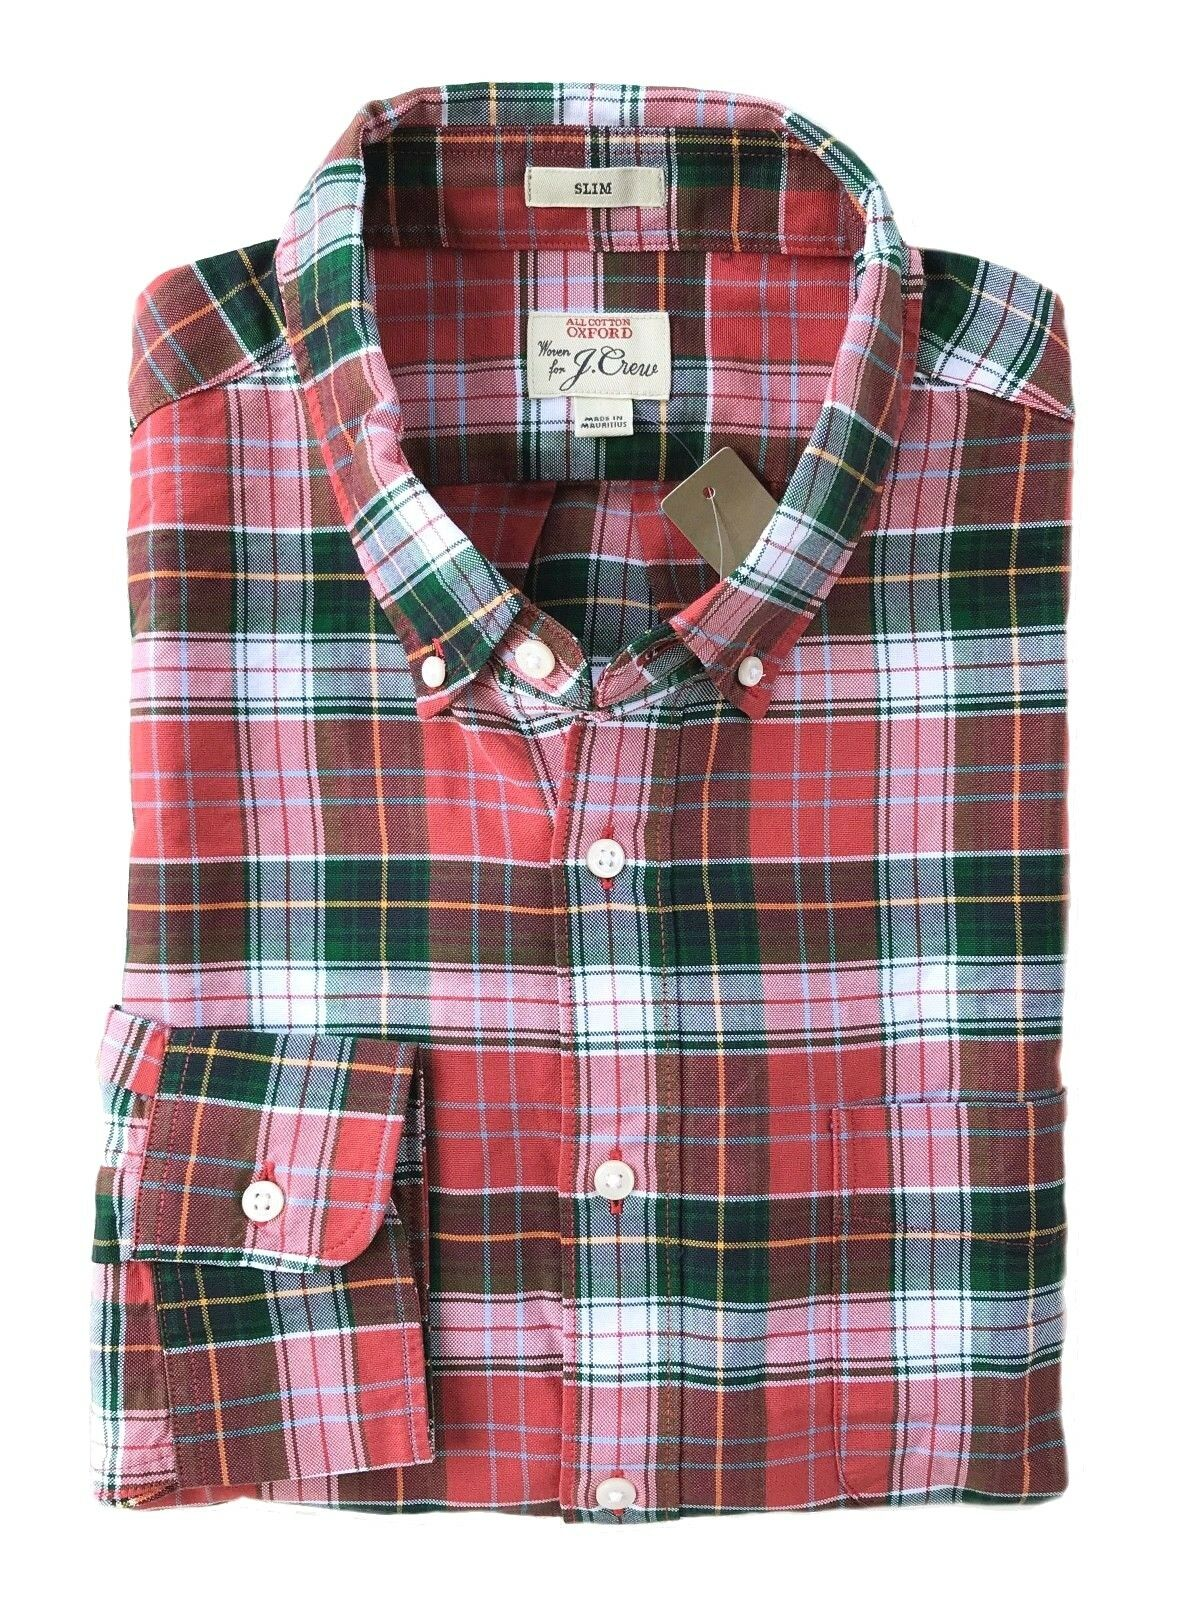 J Crew - Mens L Slim Fit - NWT Red Green White Yellow Tartan Plaid Oxford Shirt